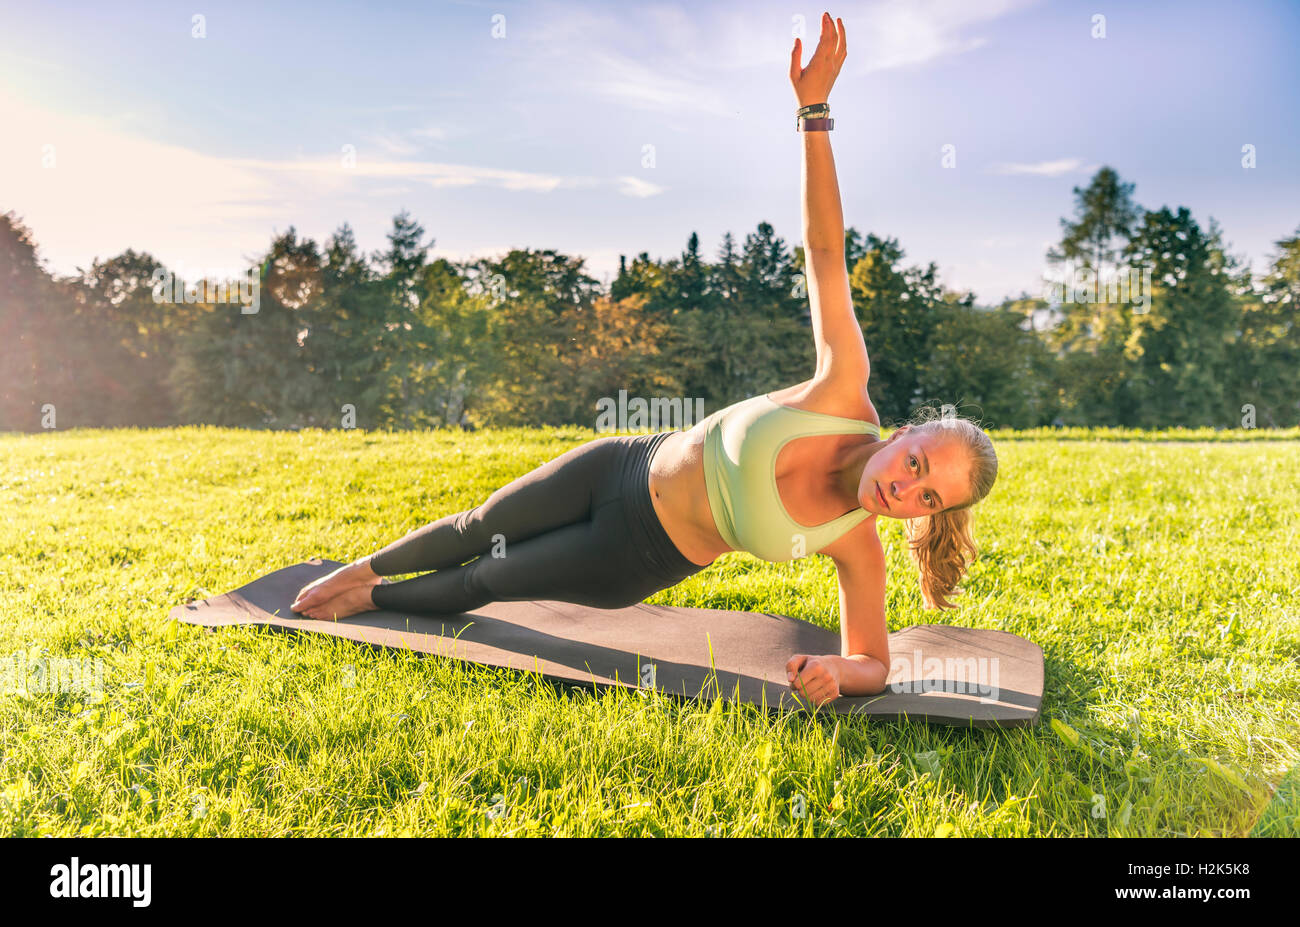 Young woman in sportswear doing side plank, workout on mat in park, Munich, Upper Bavaria, Bavaria, Germany - Stock Image